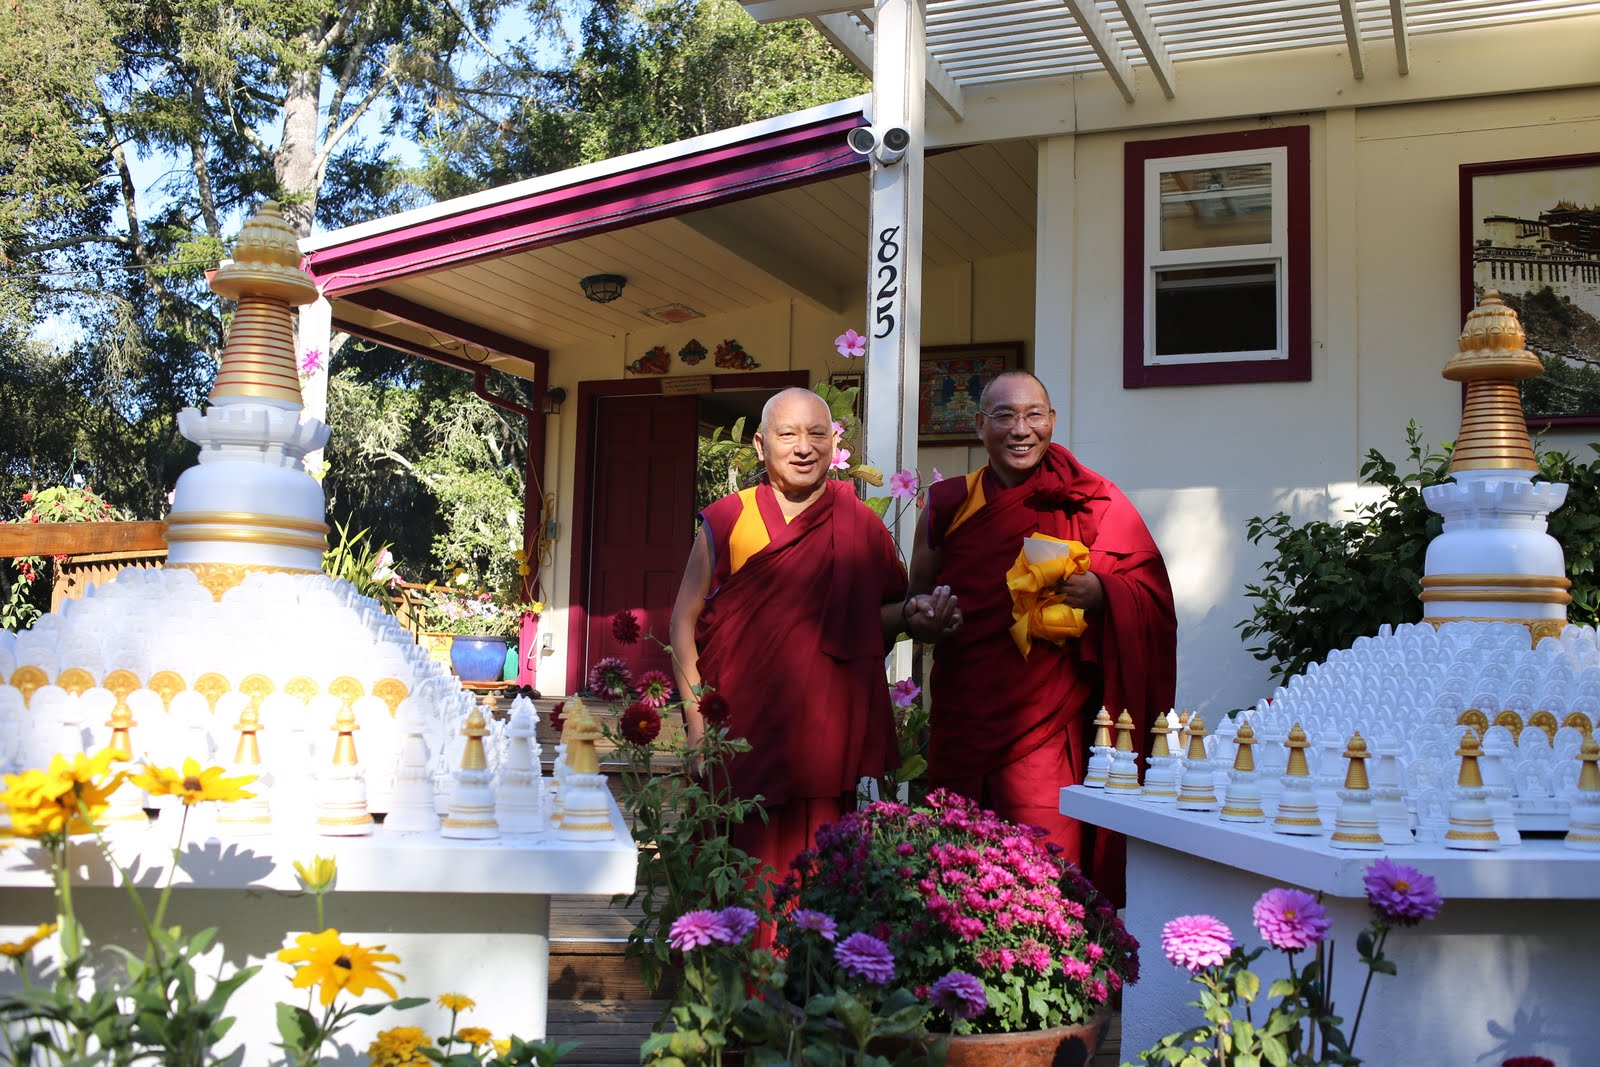 Dagri Rinpoche visiting Lama Zopa Rinpoche at his home in California. October 2013. Ven. Thubten Kunsang.